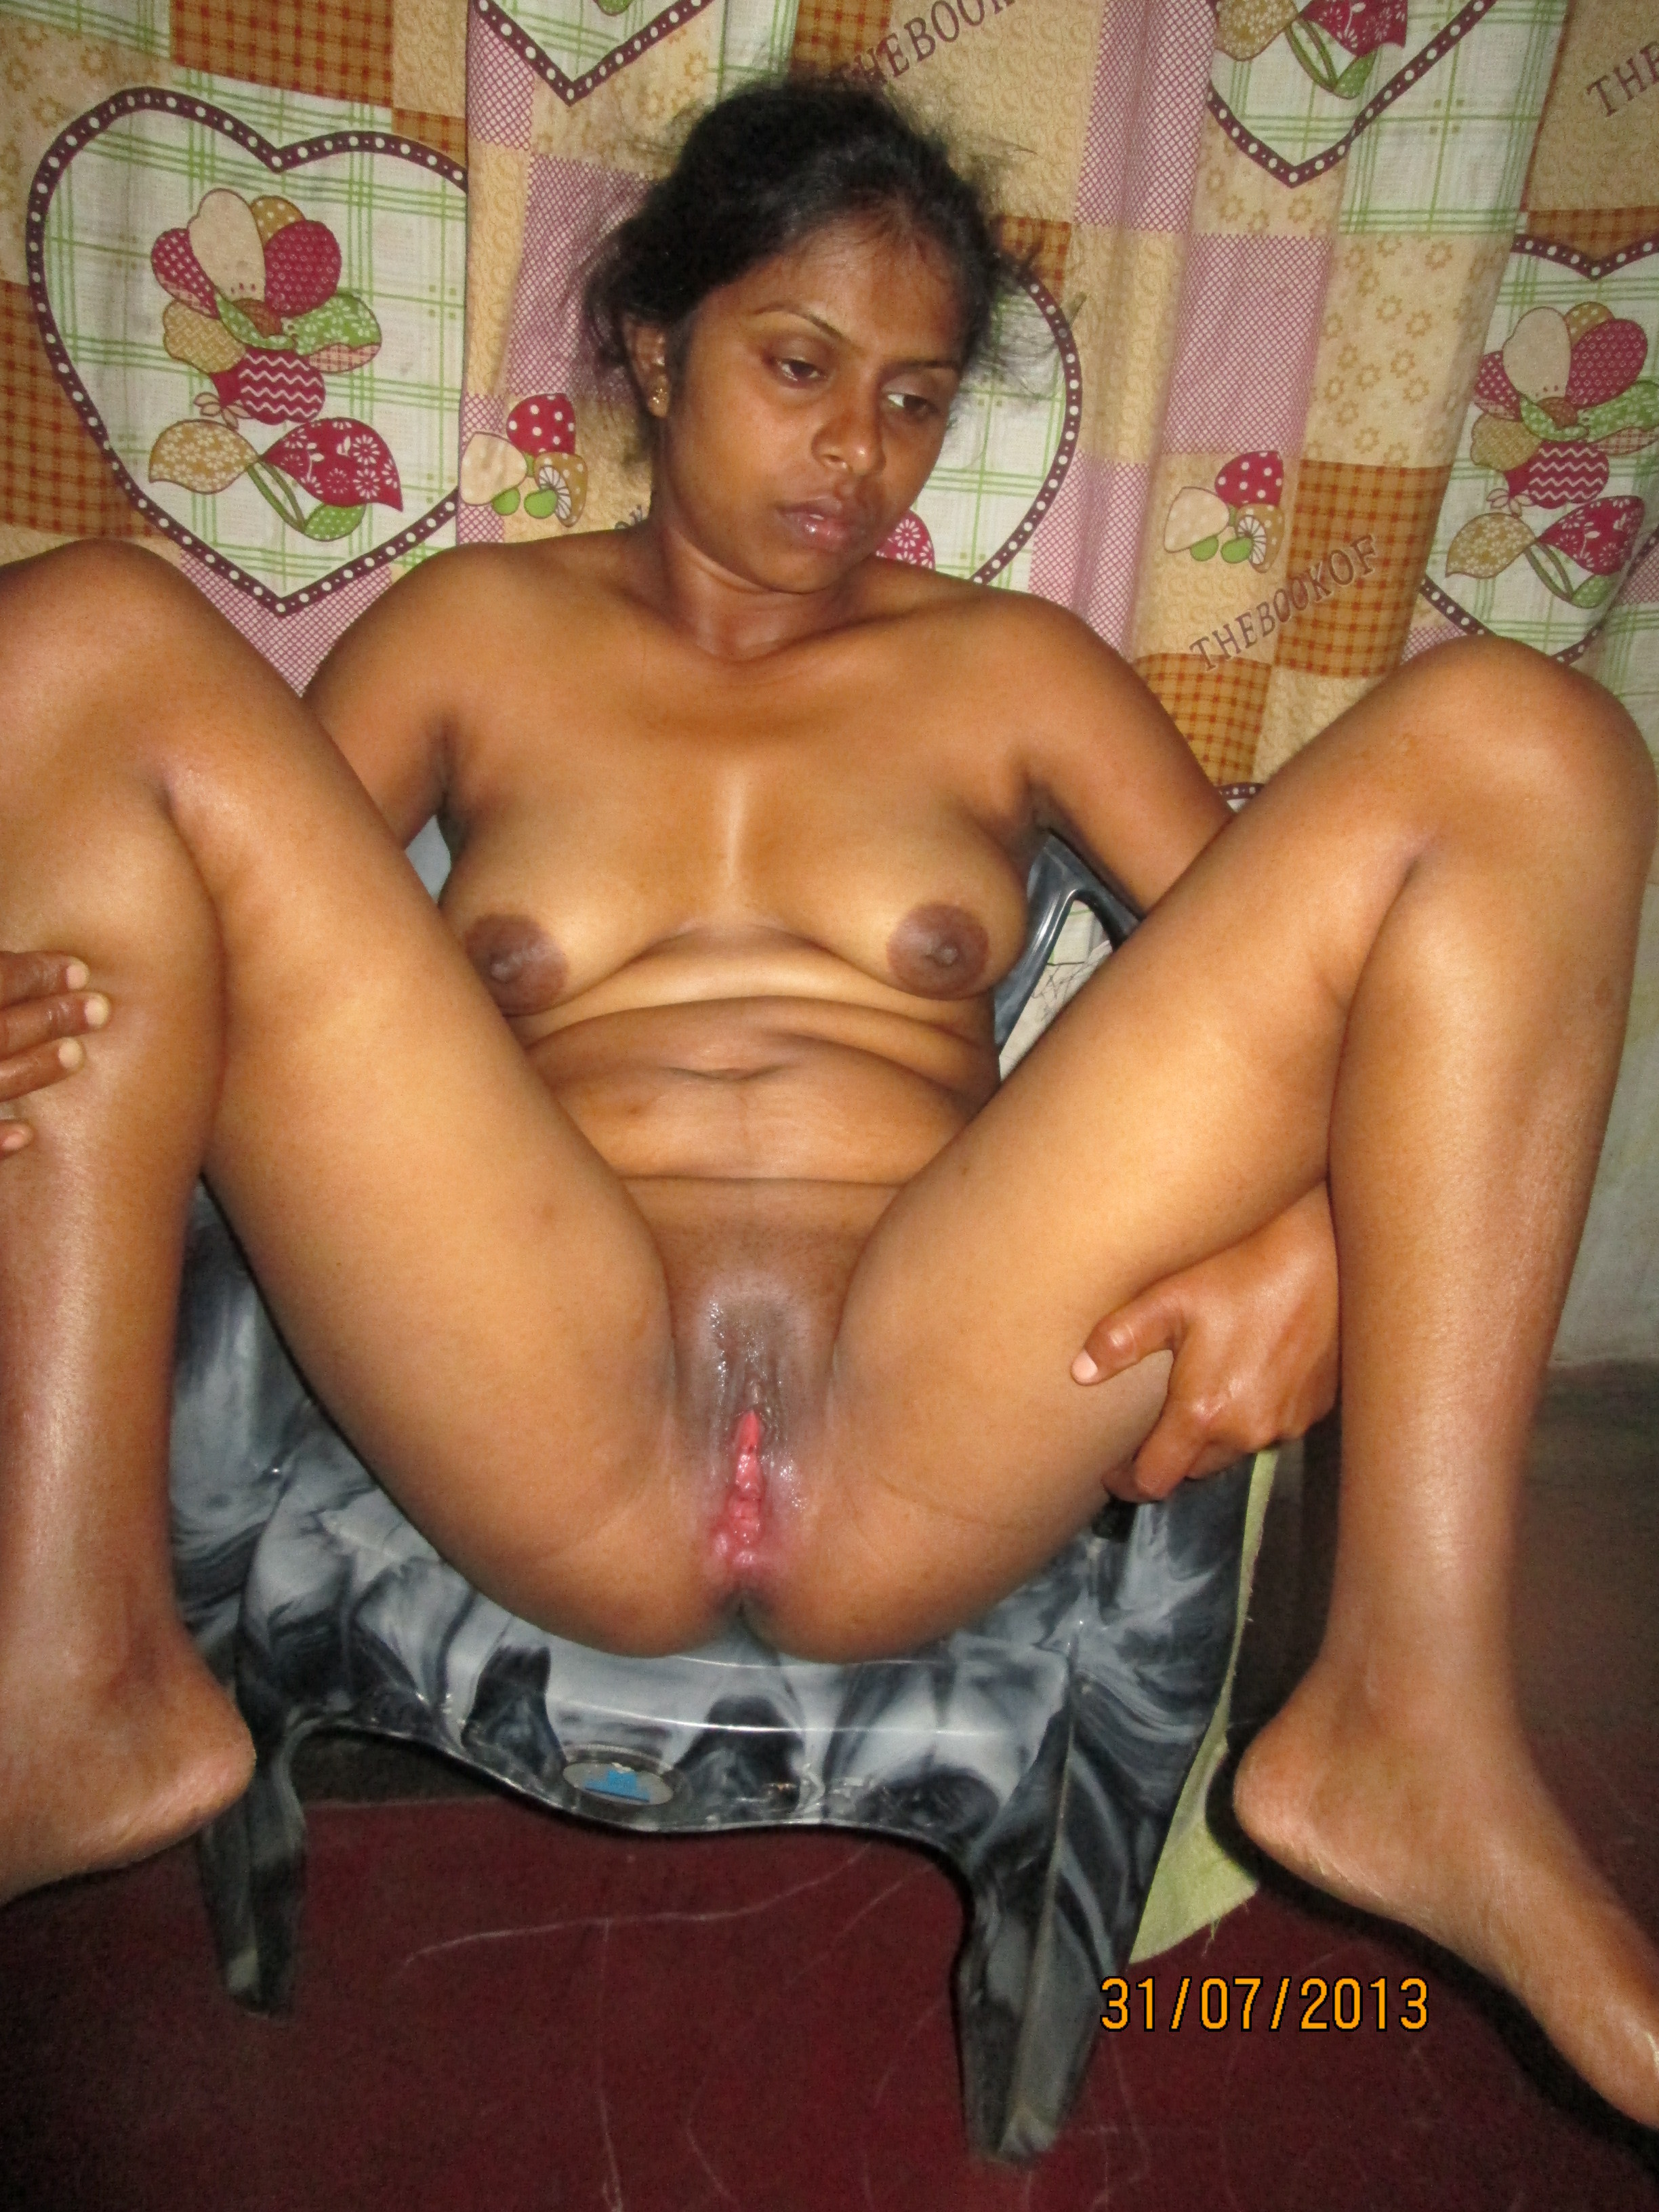 Desi nude album exposed tube